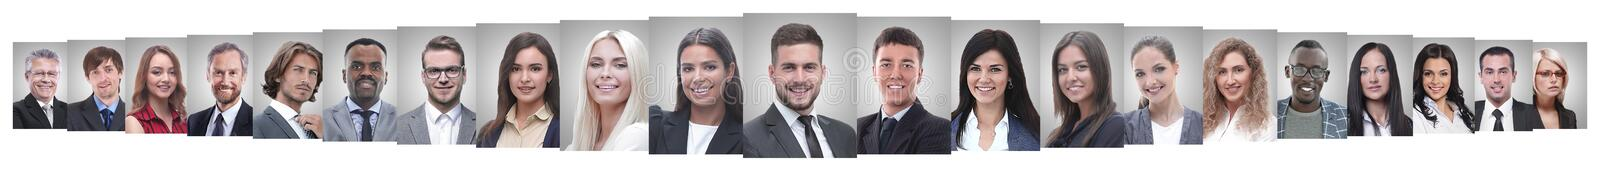 Leader and professional business team standing together. royalty free stock photography